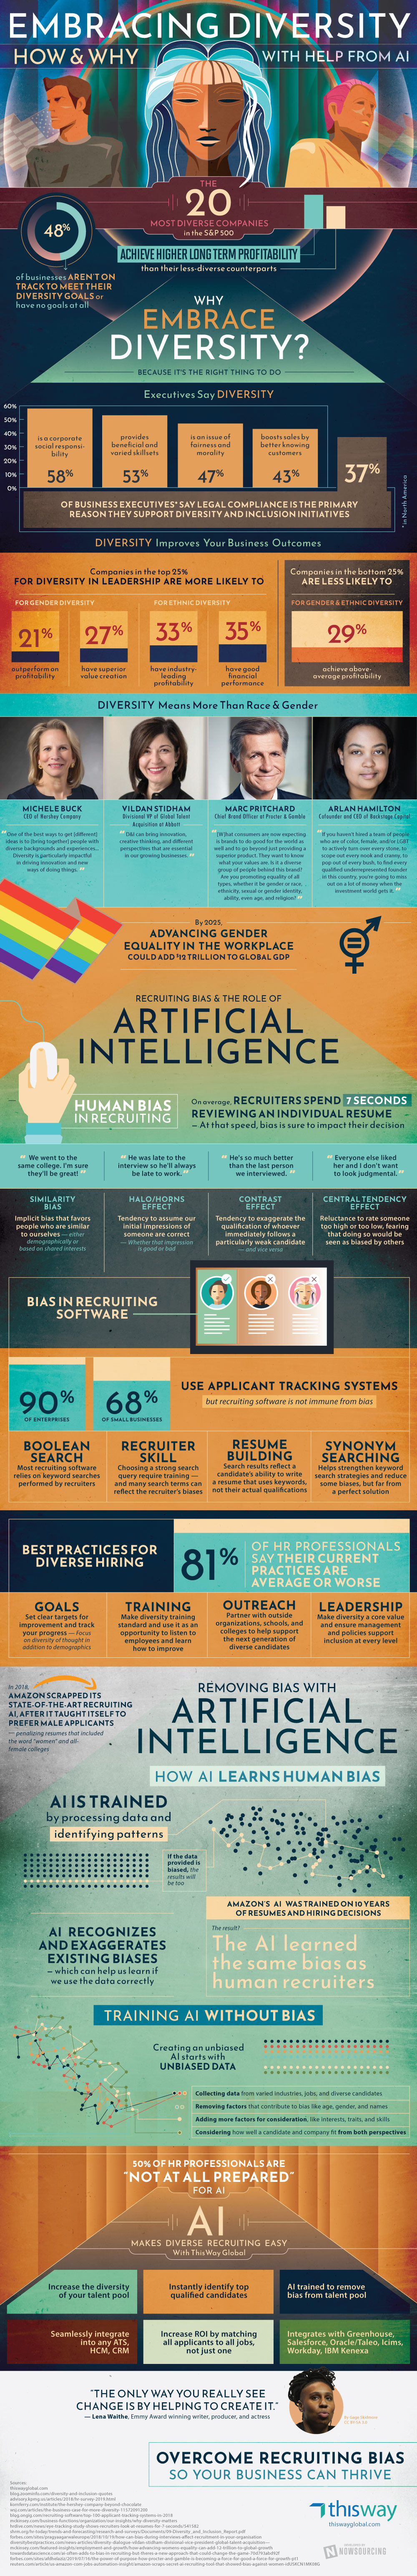 Embracing Diversity Infographic